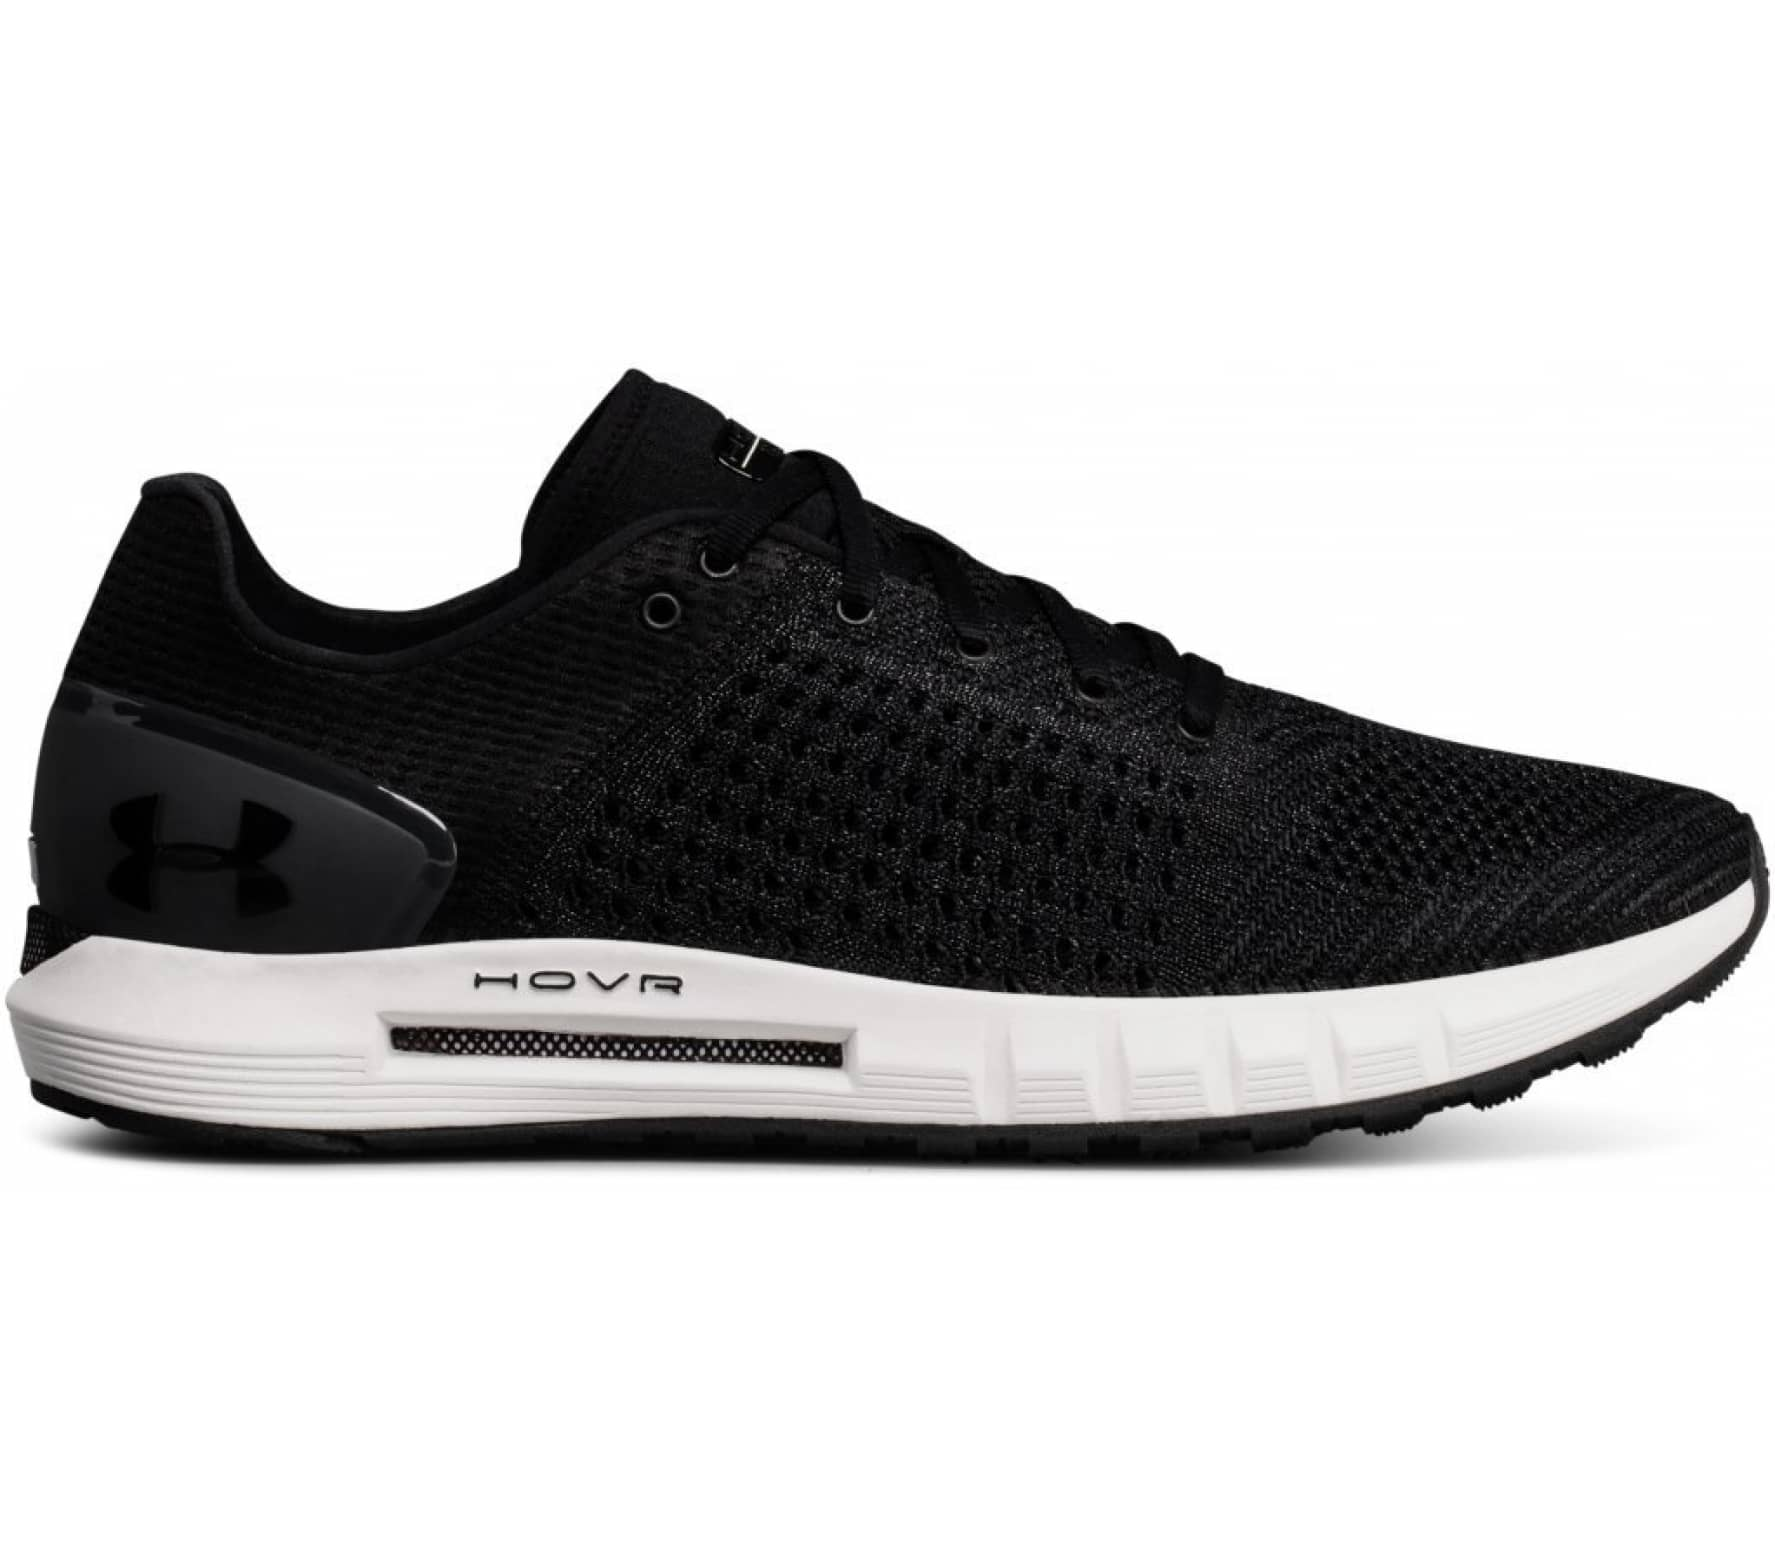 500eb492c1 Under Armour - Hovr Sonic NC men s running shoes (black white) - buy ...